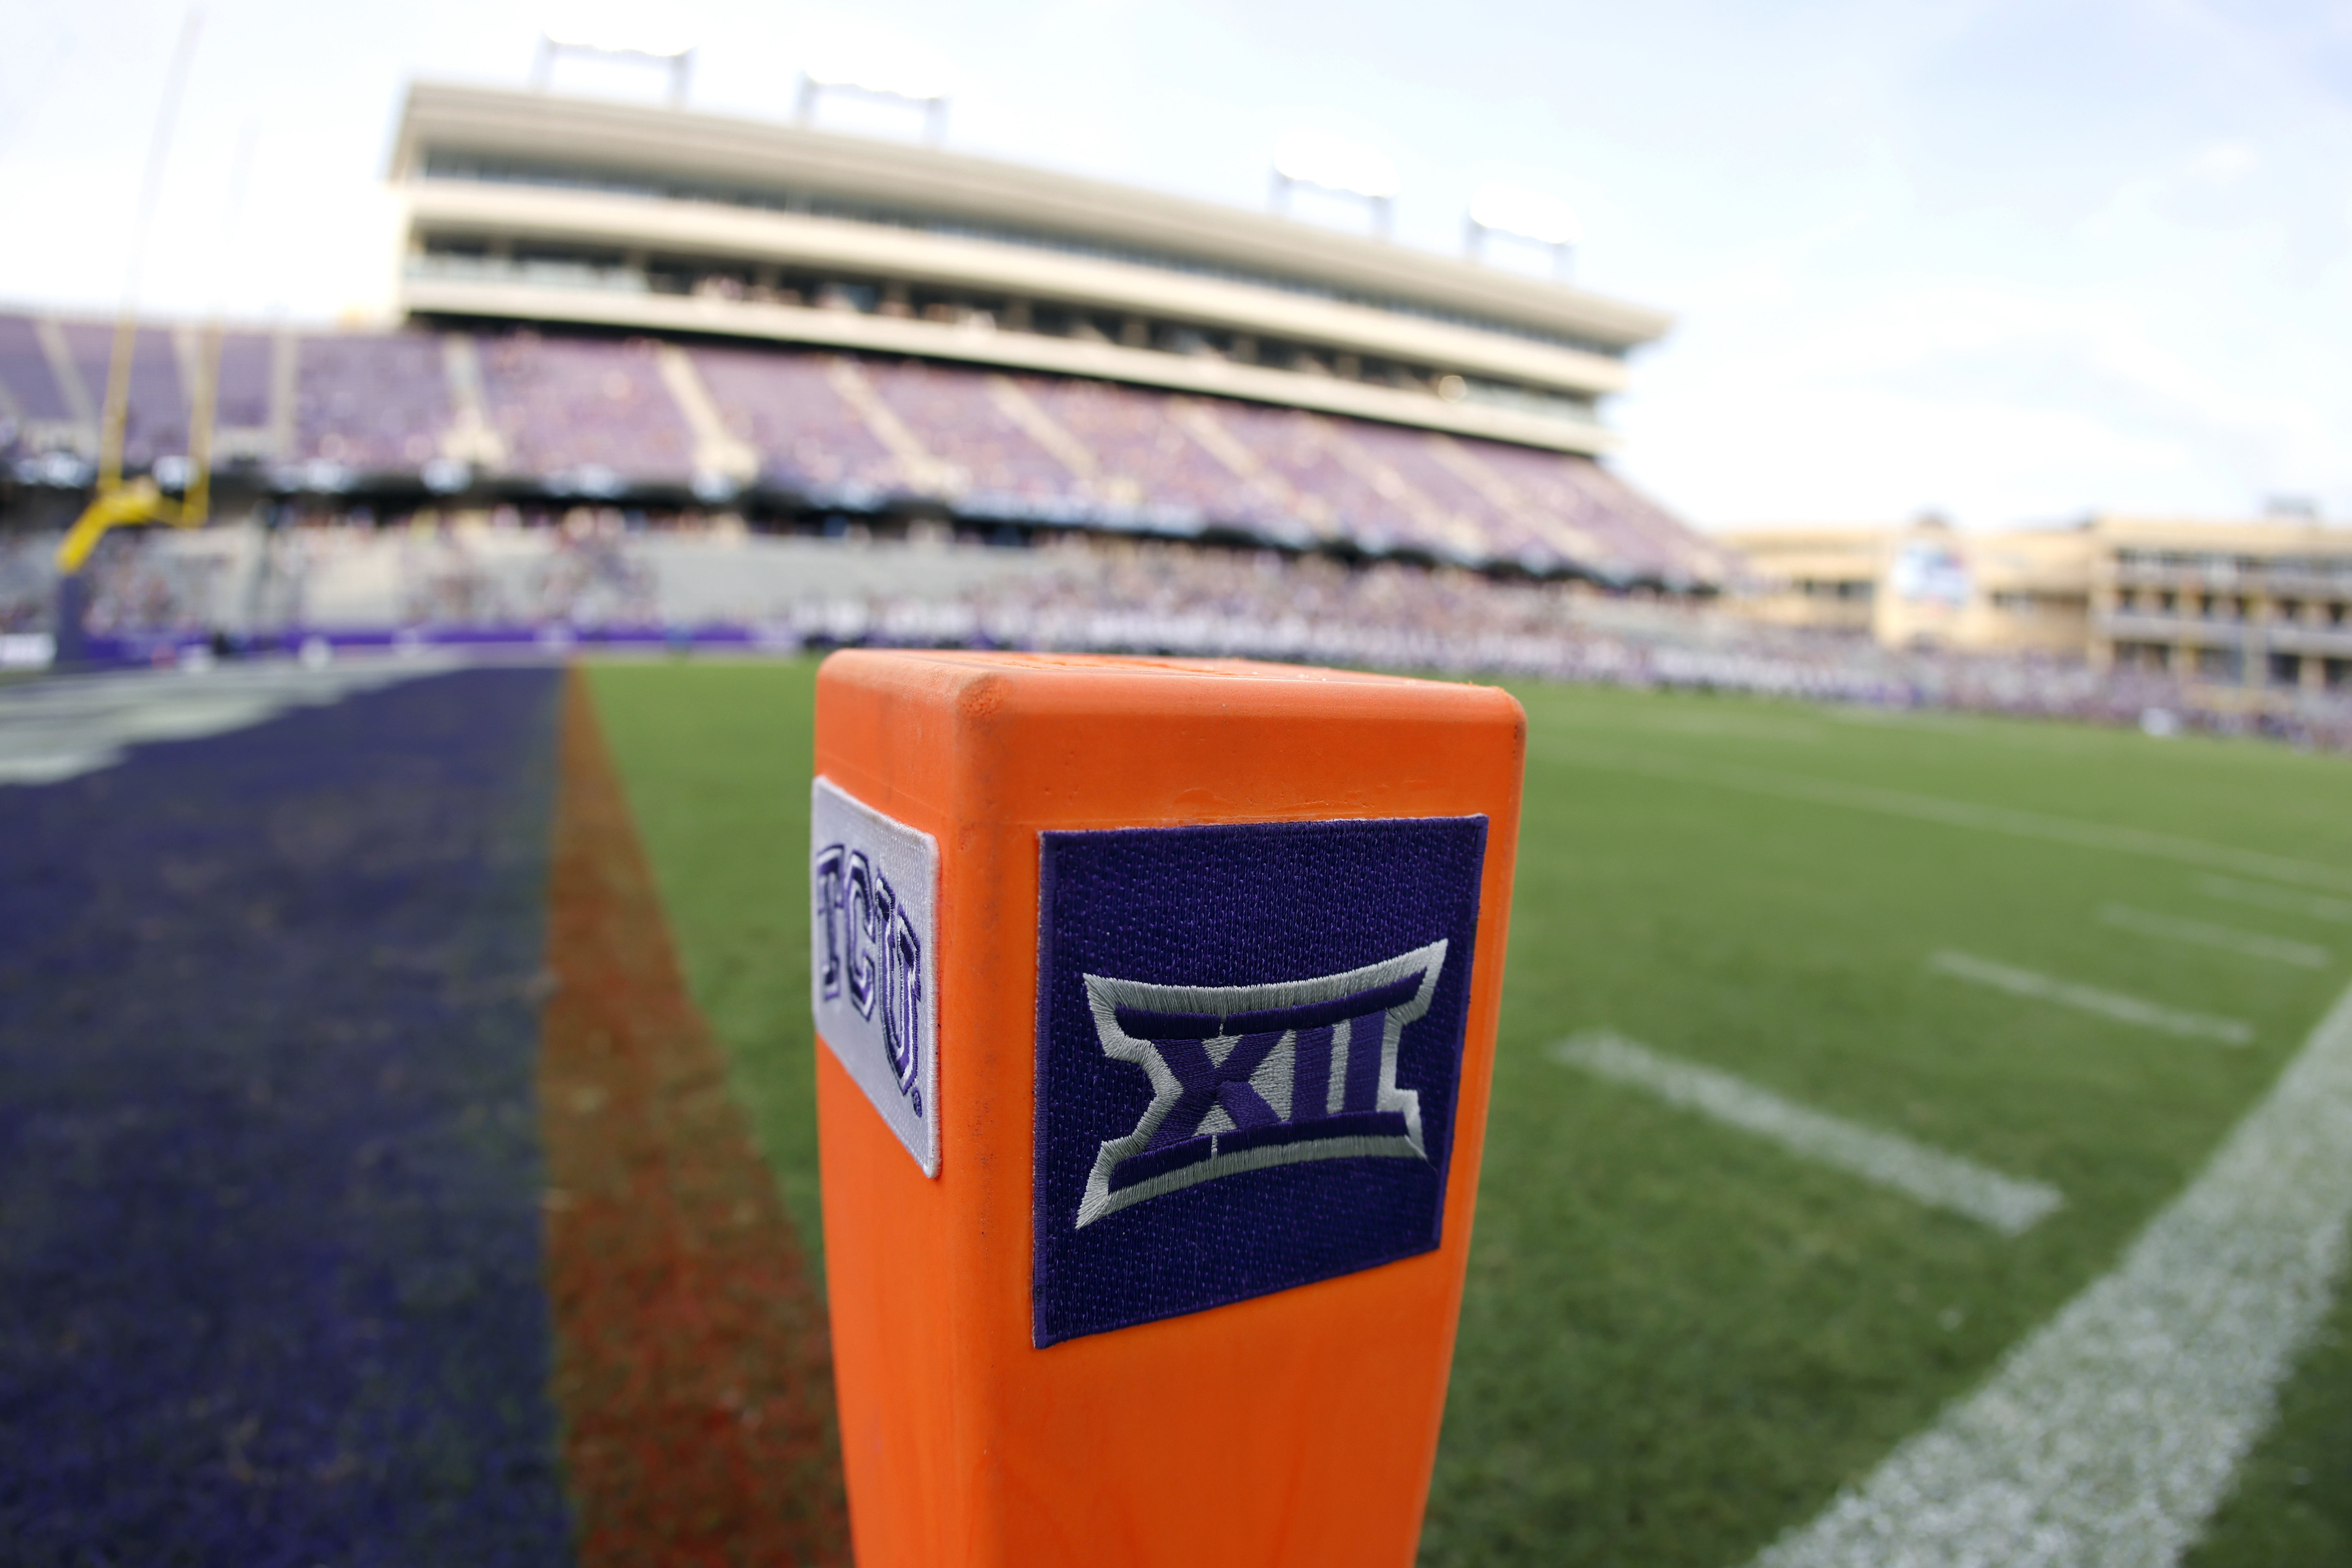 A Big 12 logo is displayed on a goal line pylon before Duquesne played TCU in Fort Worth, Texas.